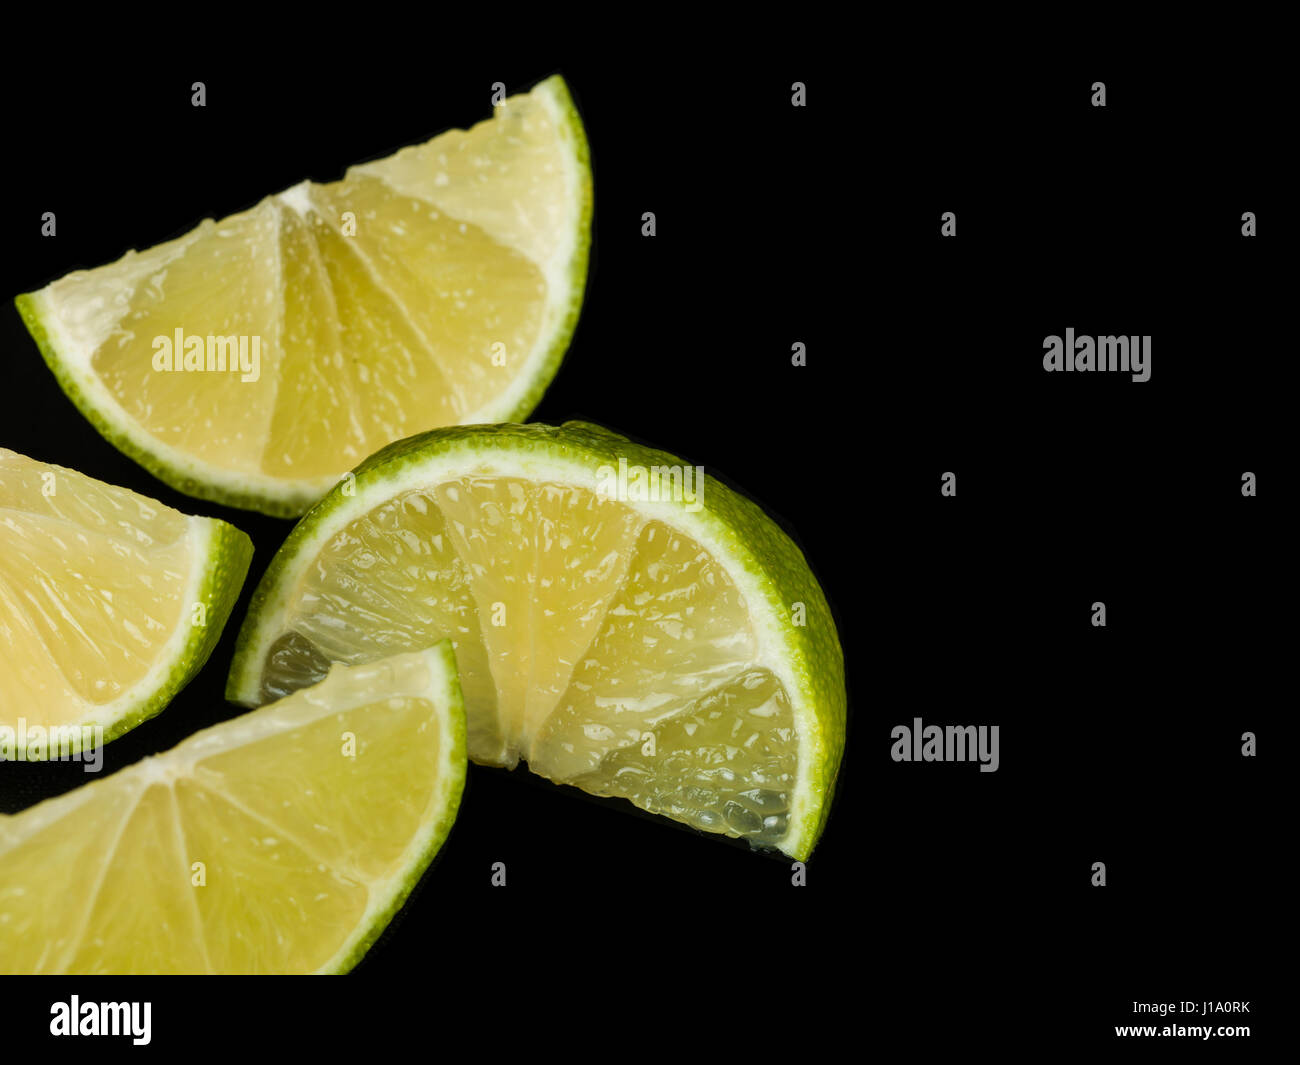 Fresh Ripe Juicy Lime Segments Against a Black Background - Stock Image